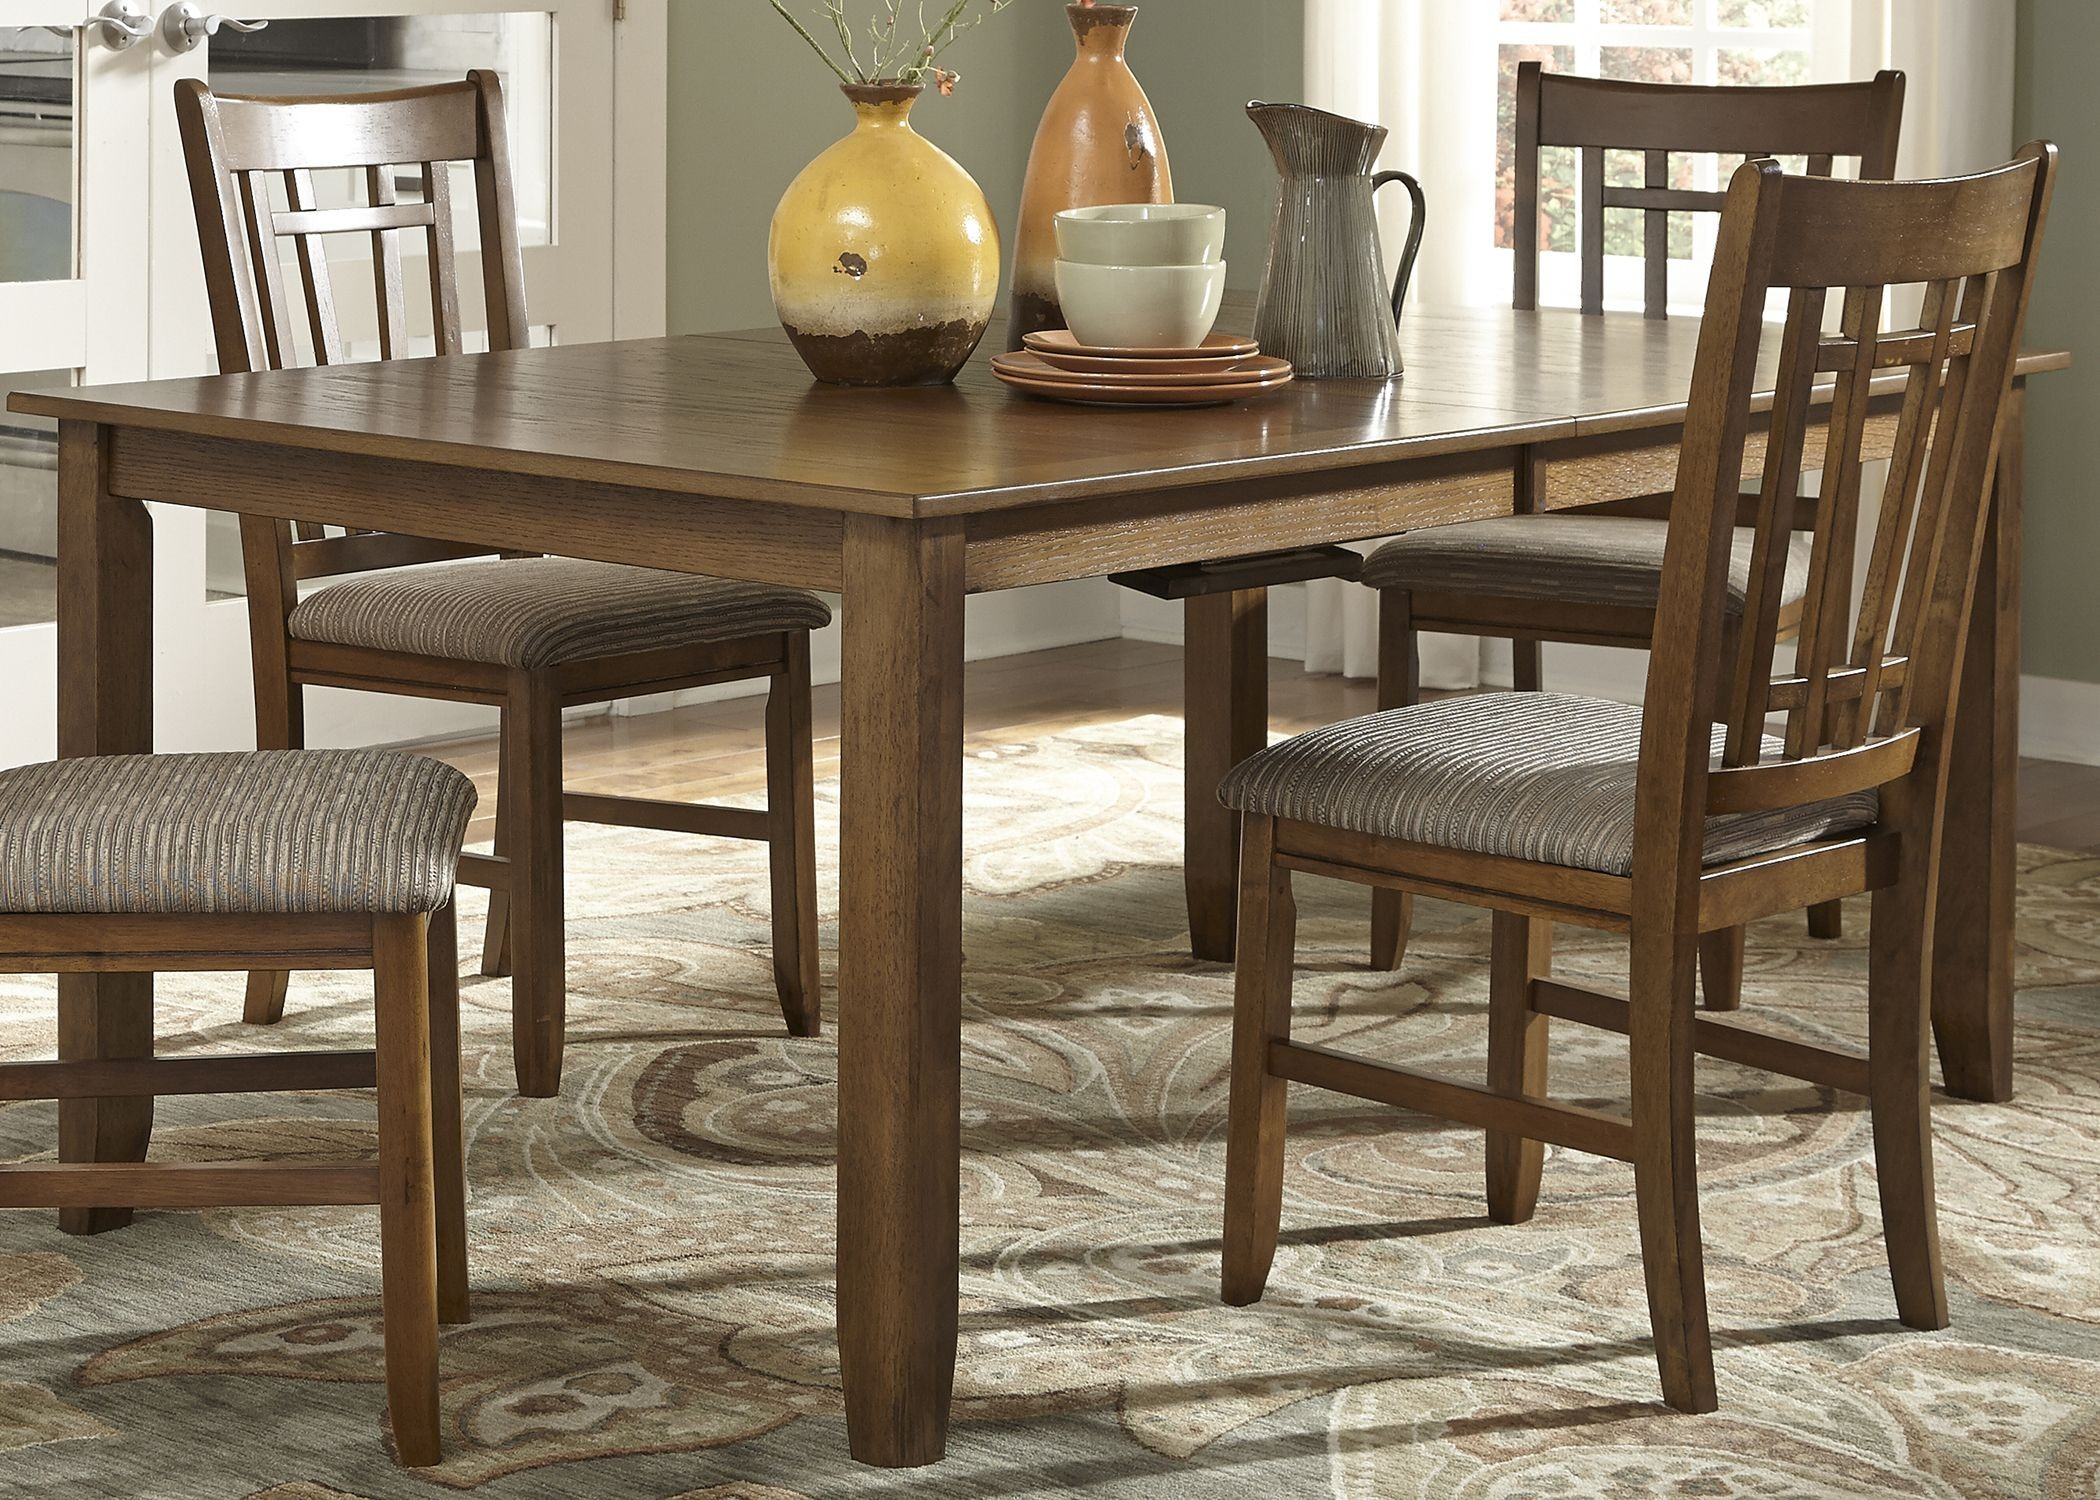 Santa Rosa Brown Extendable Rectangular Leg Dining Table  : 25 t4282liberty from colemanfurniture.com size 2100 x 1500 jpeg 813kB